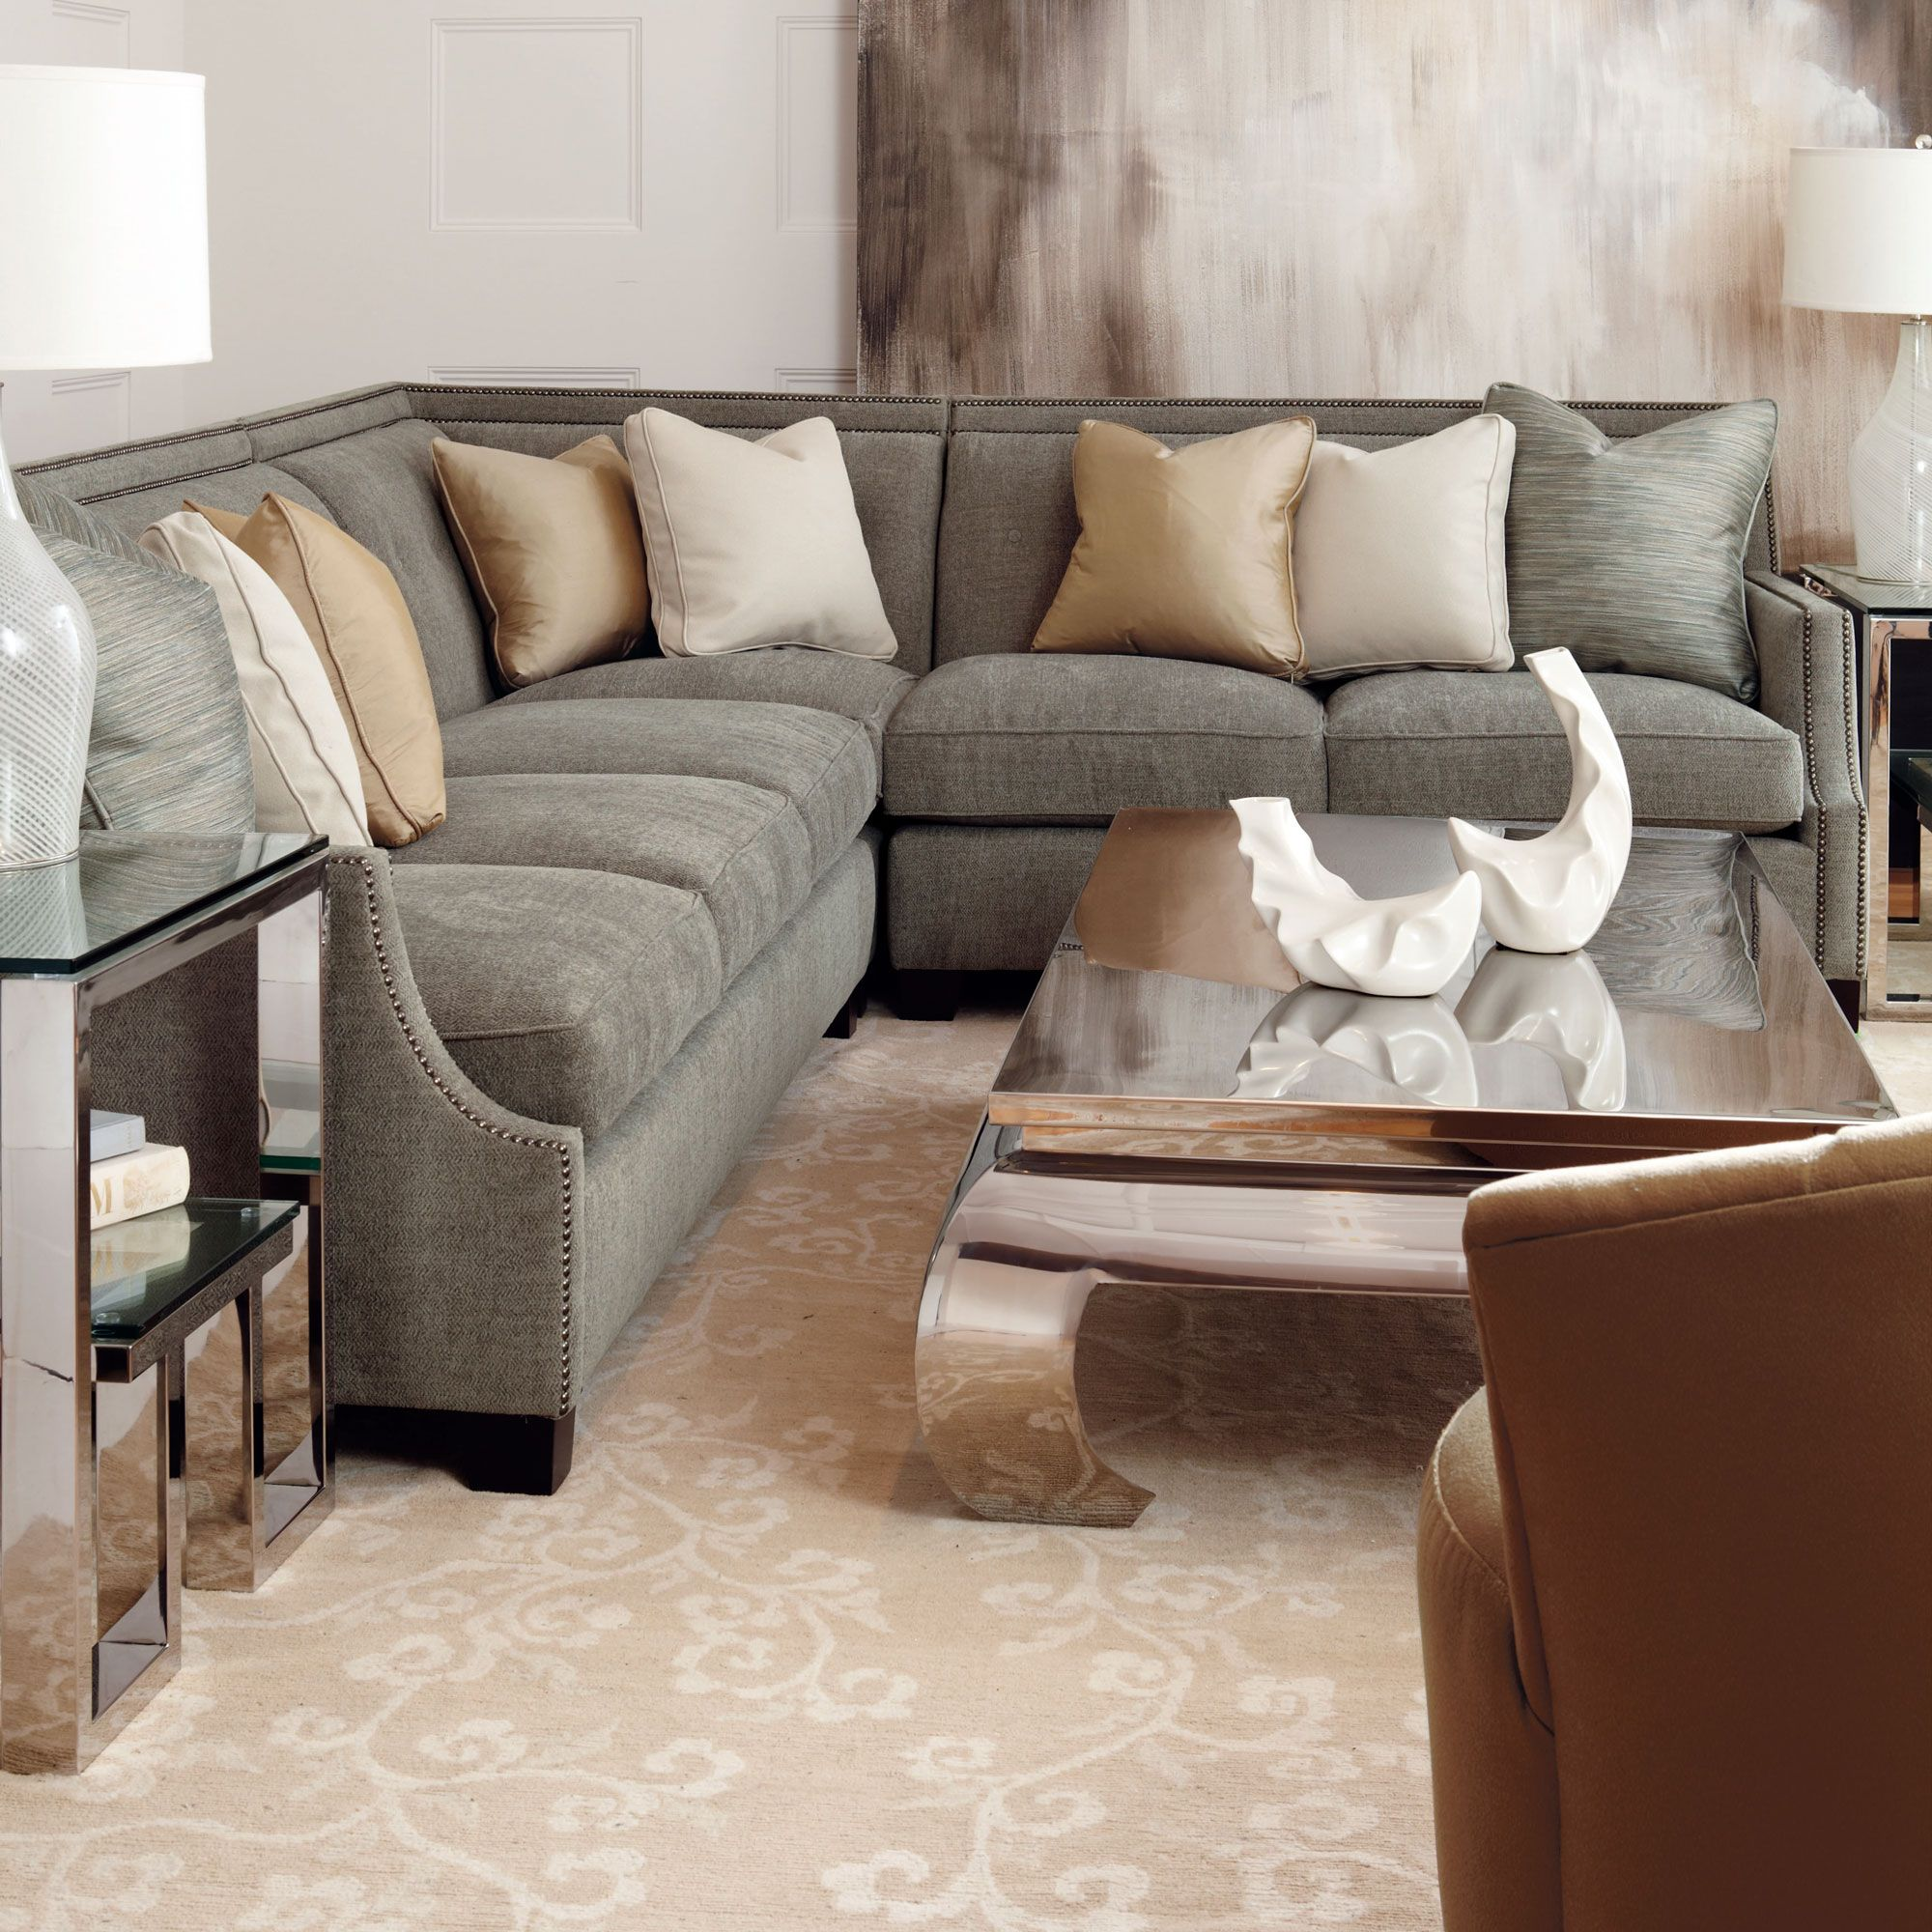 Shop for the bernhardt interiors franco sectional sofa at jacksonville furniture mart your jacksonville gainesville palm coast fernandina beach